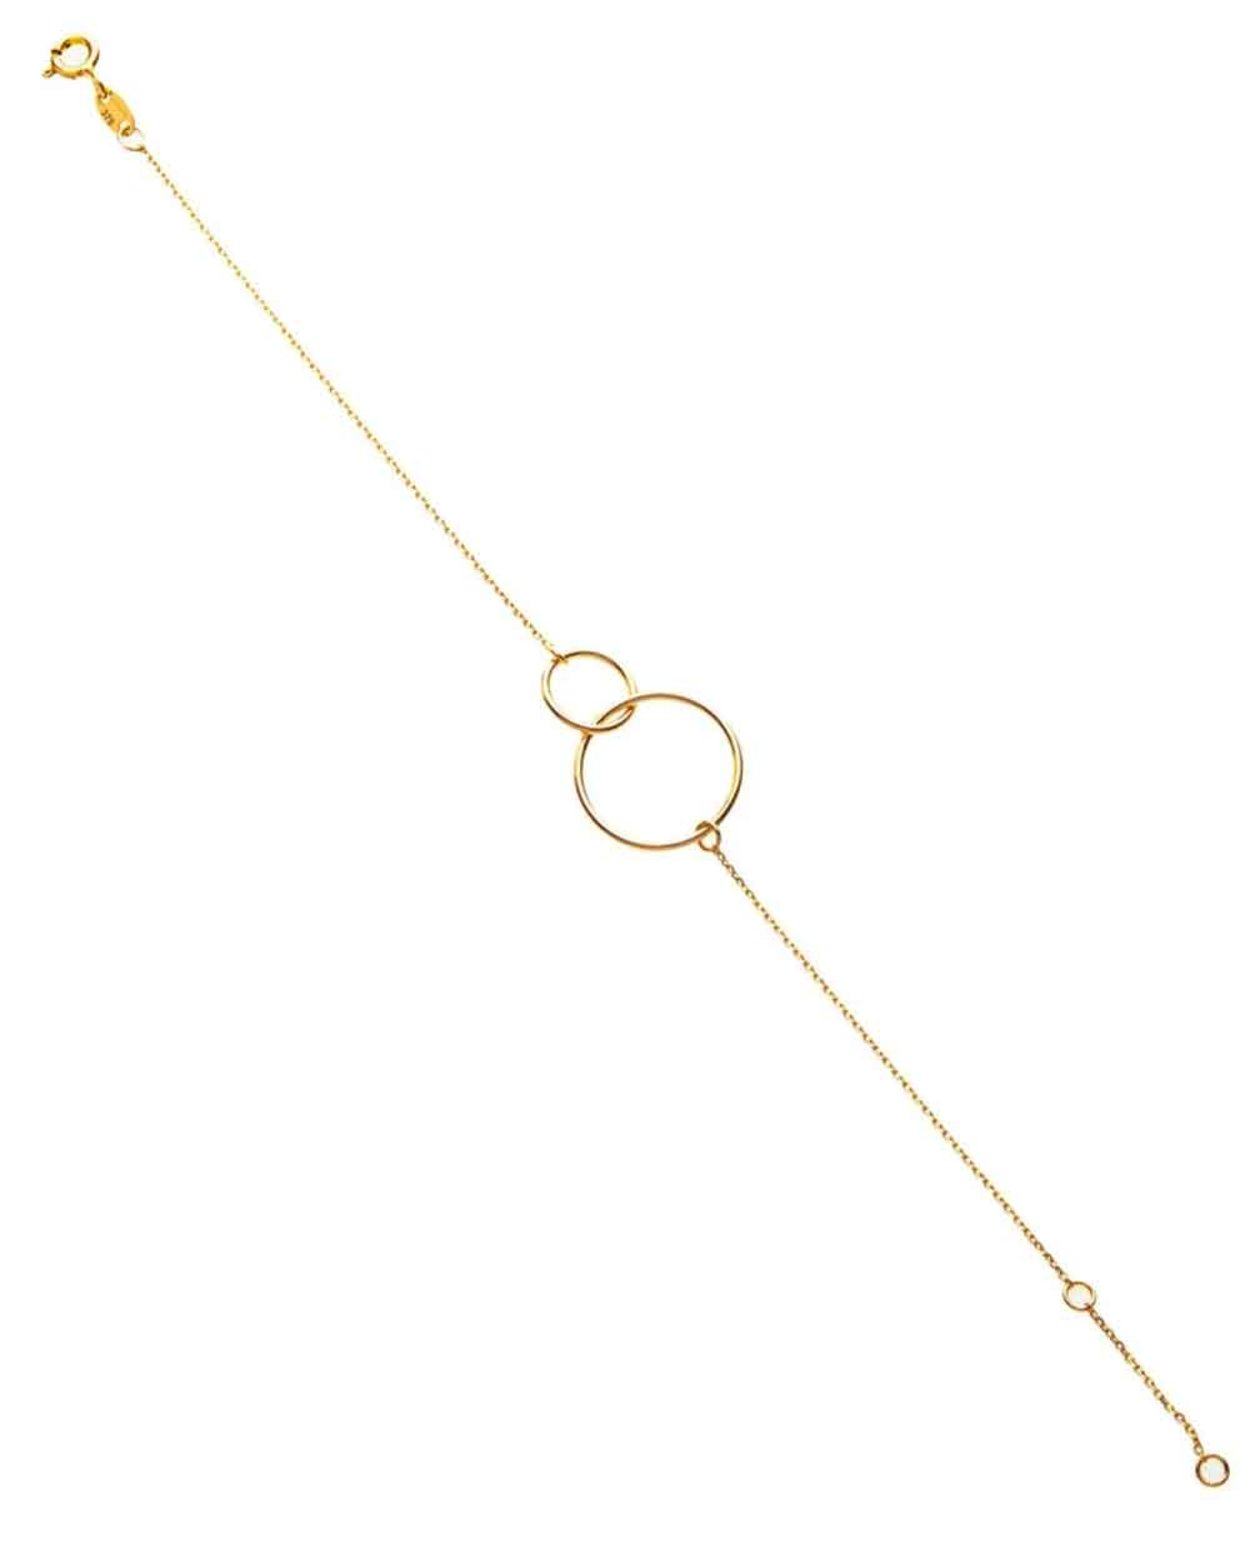 9kt Gold Double Circle Bracelet